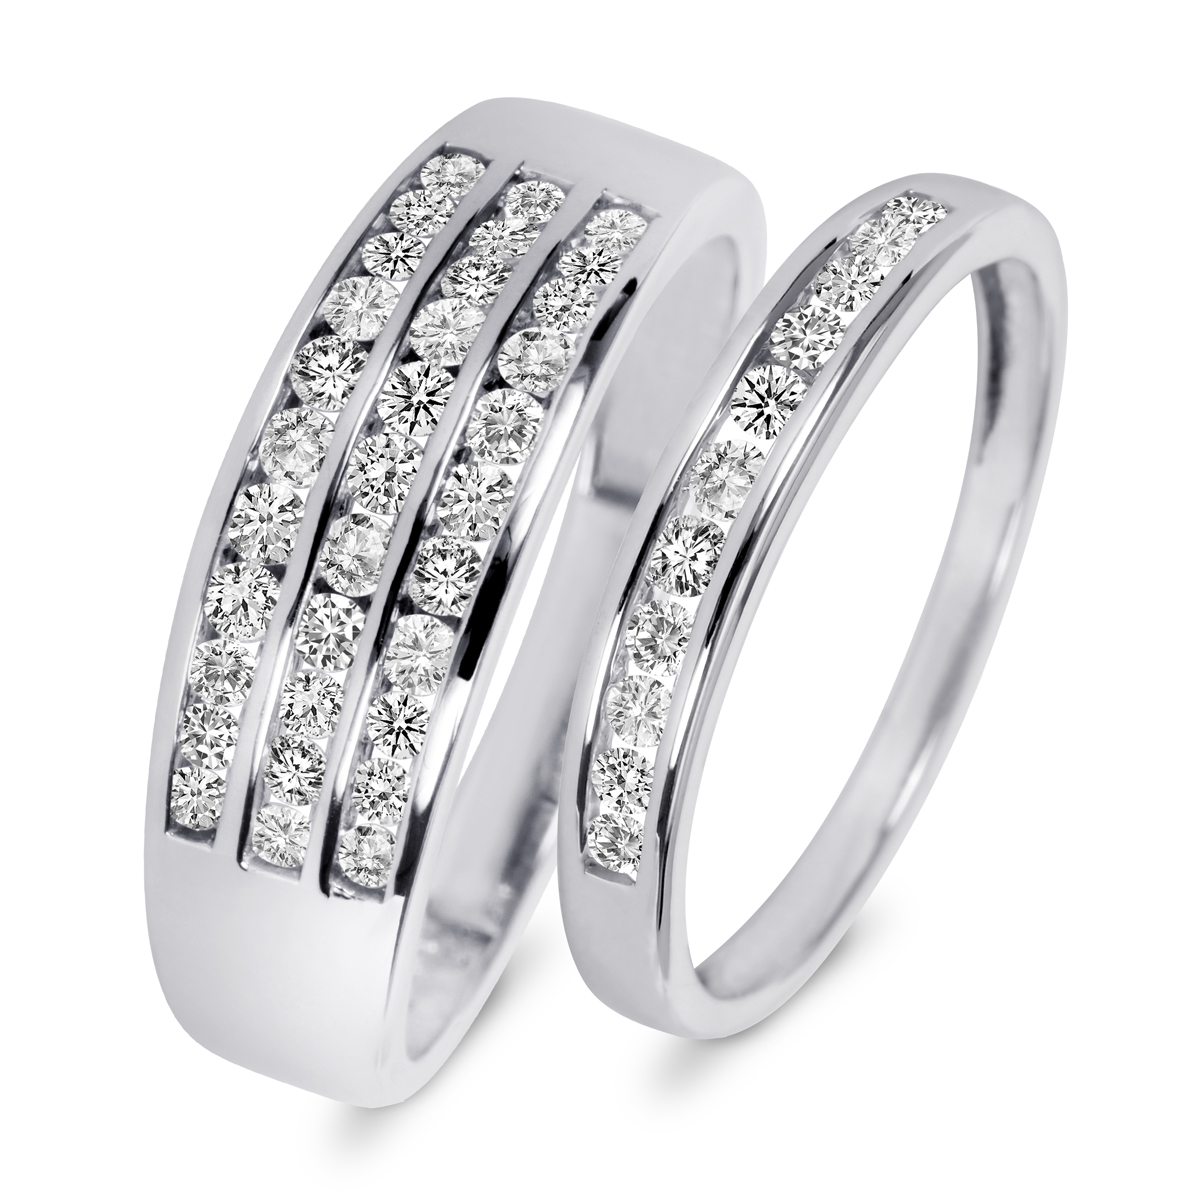 78 carat tw diamond his and hers wedding rings 14k white gold my trio rings wb500w14k - His And Hers Wedding Ring Sets